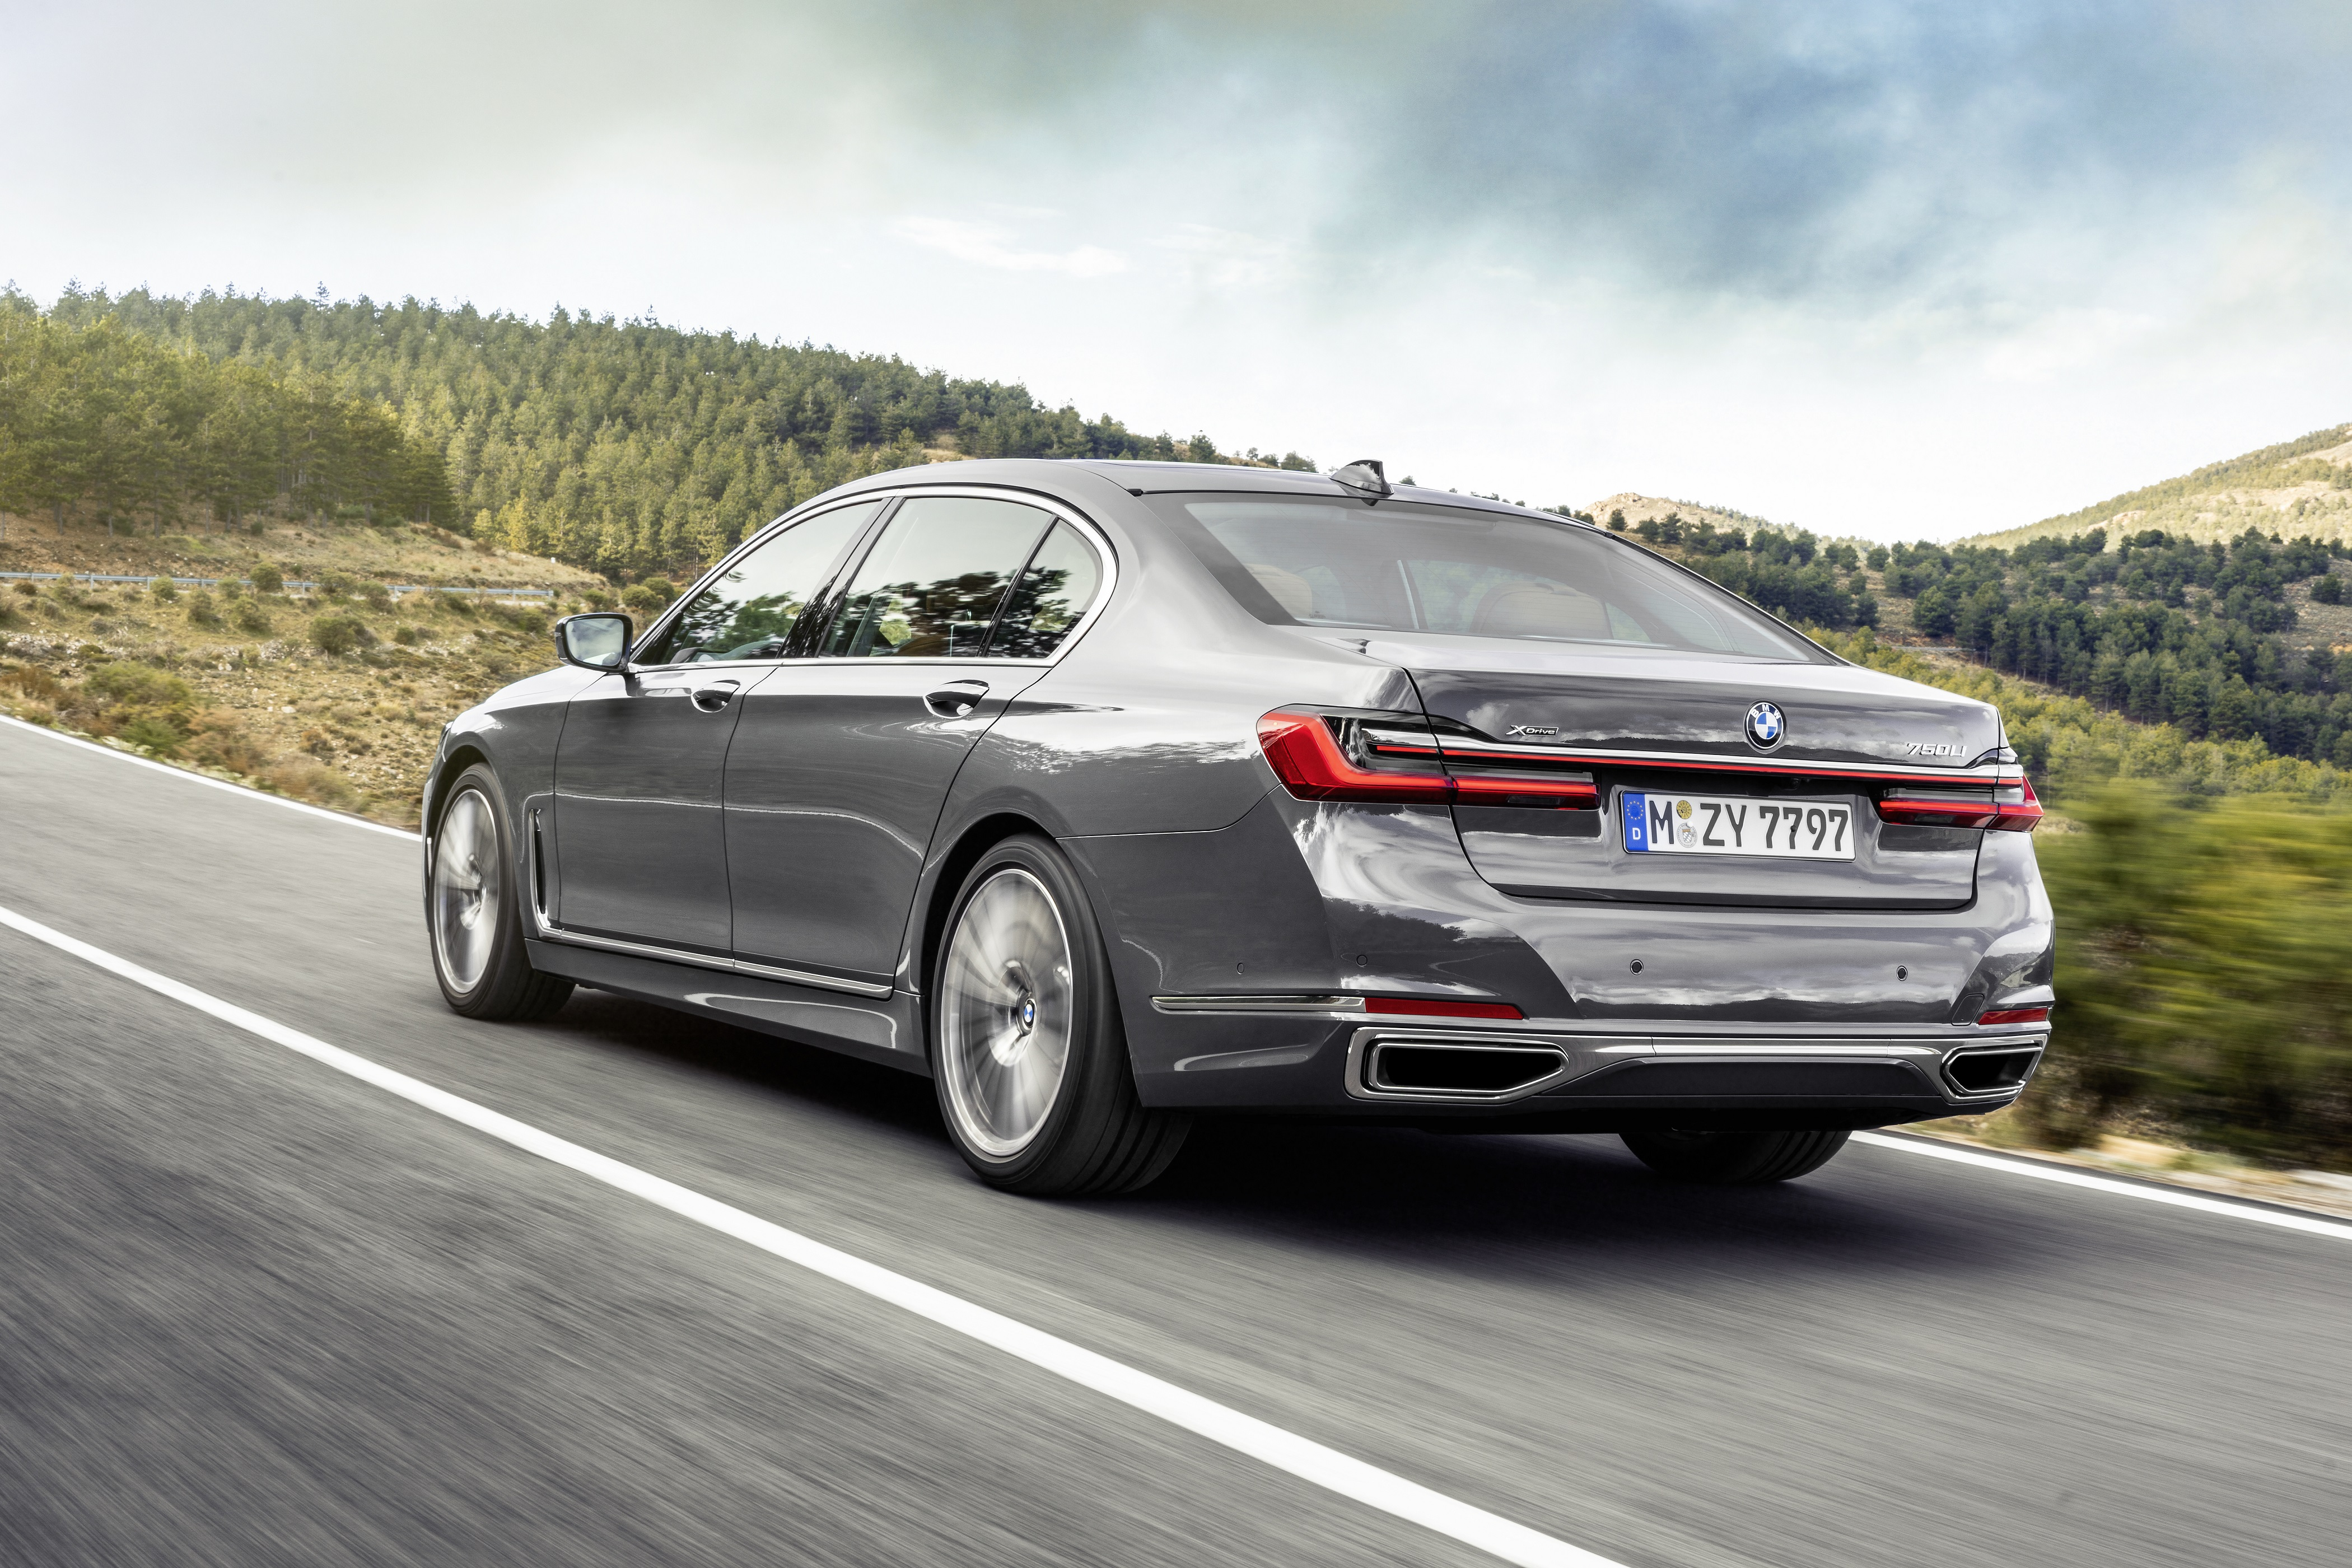 New Bmw 7 Series Now In Singapore With More Interior Tech Torque